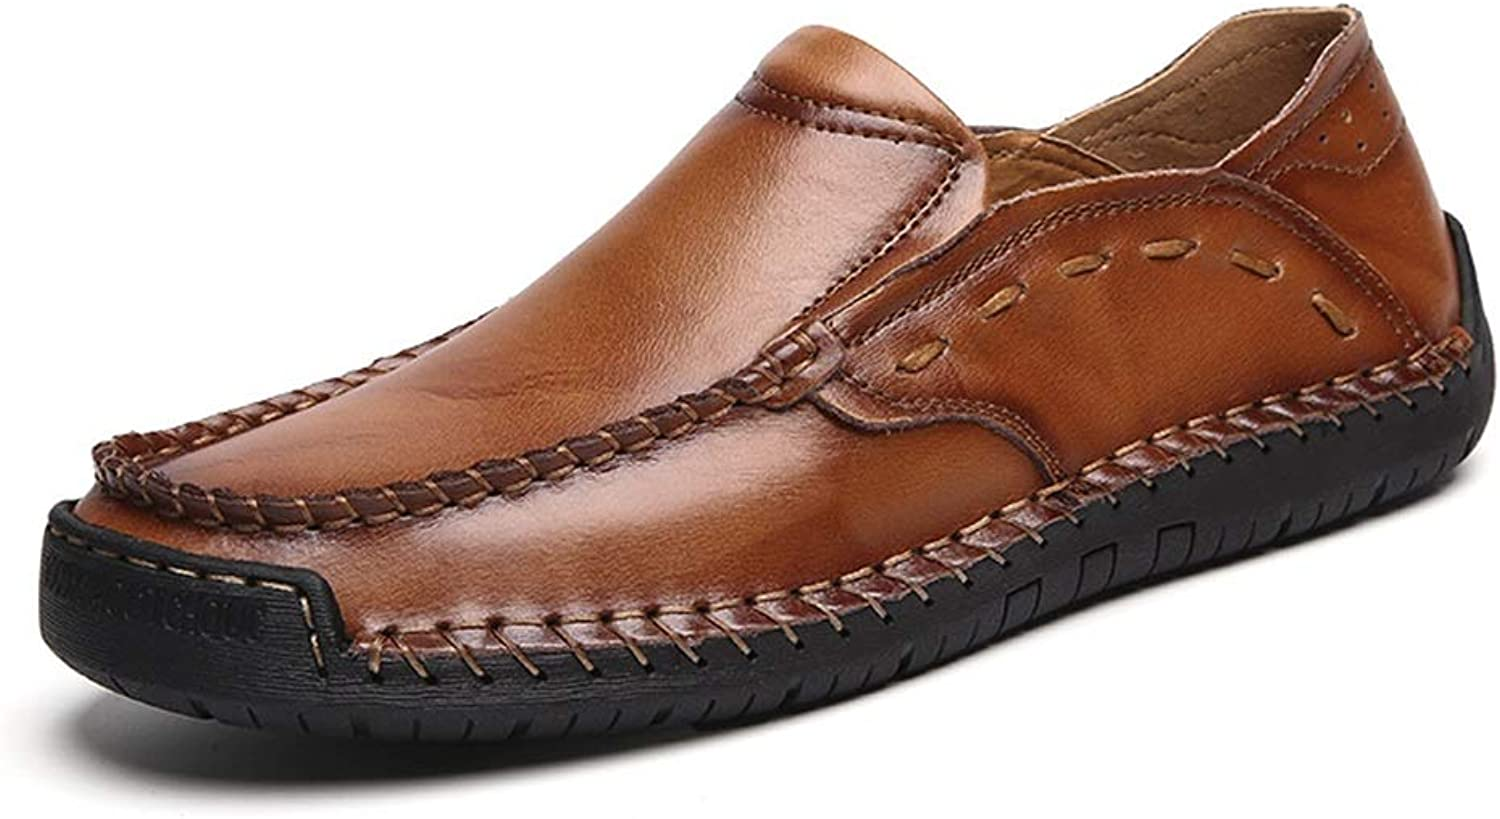 Ino Durable and Fashion Hand-Made Business Casual PU Leather shoes for Men Comfortable Breathable Anti-Slip Flat Loafers Lined Slip-on Round Toe